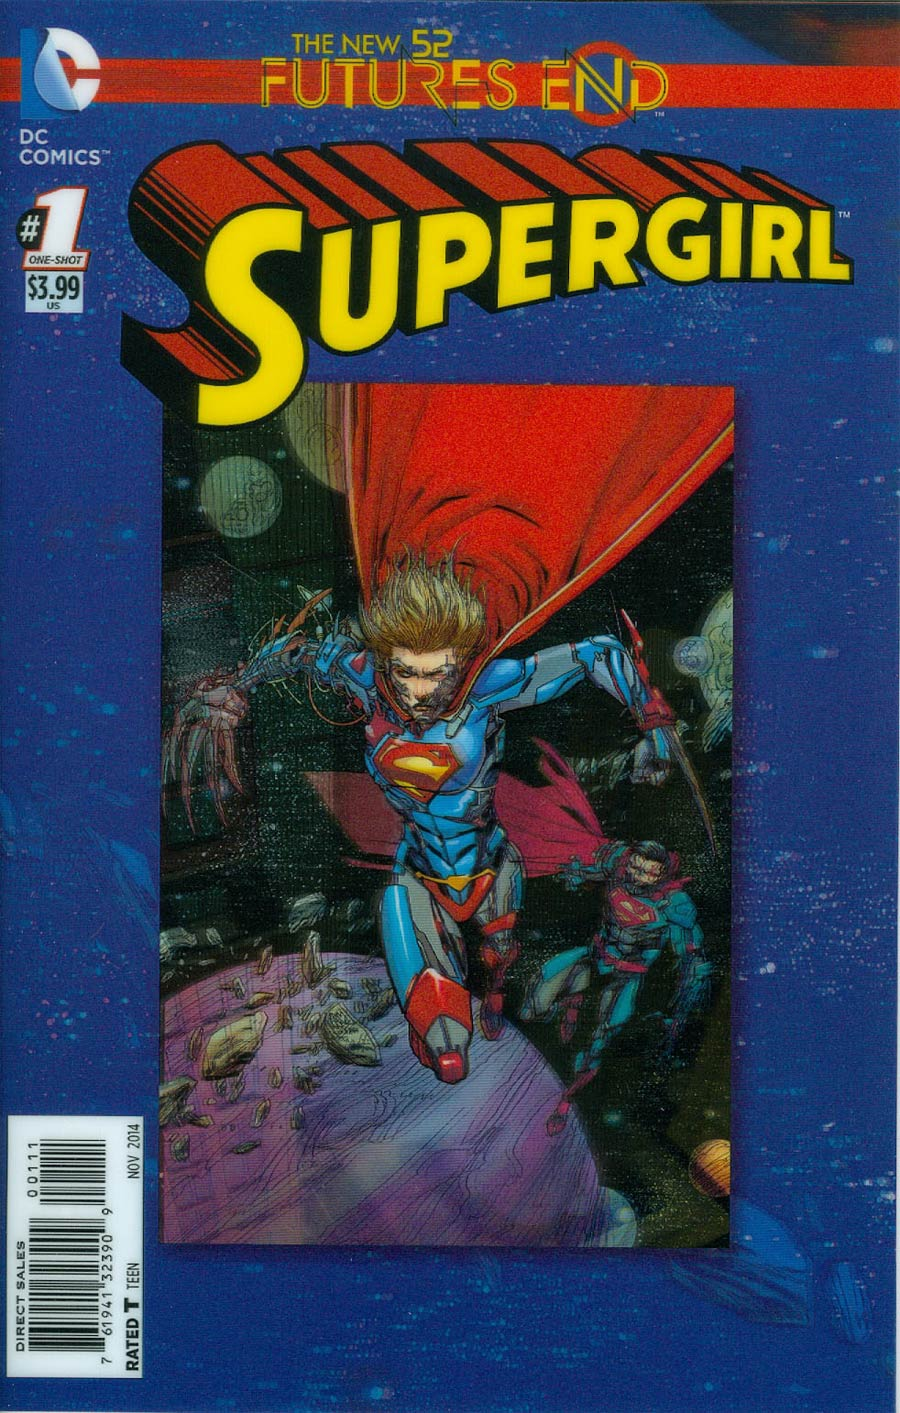 Supergirl Futures End #1 Cover A 3D Motion Cover